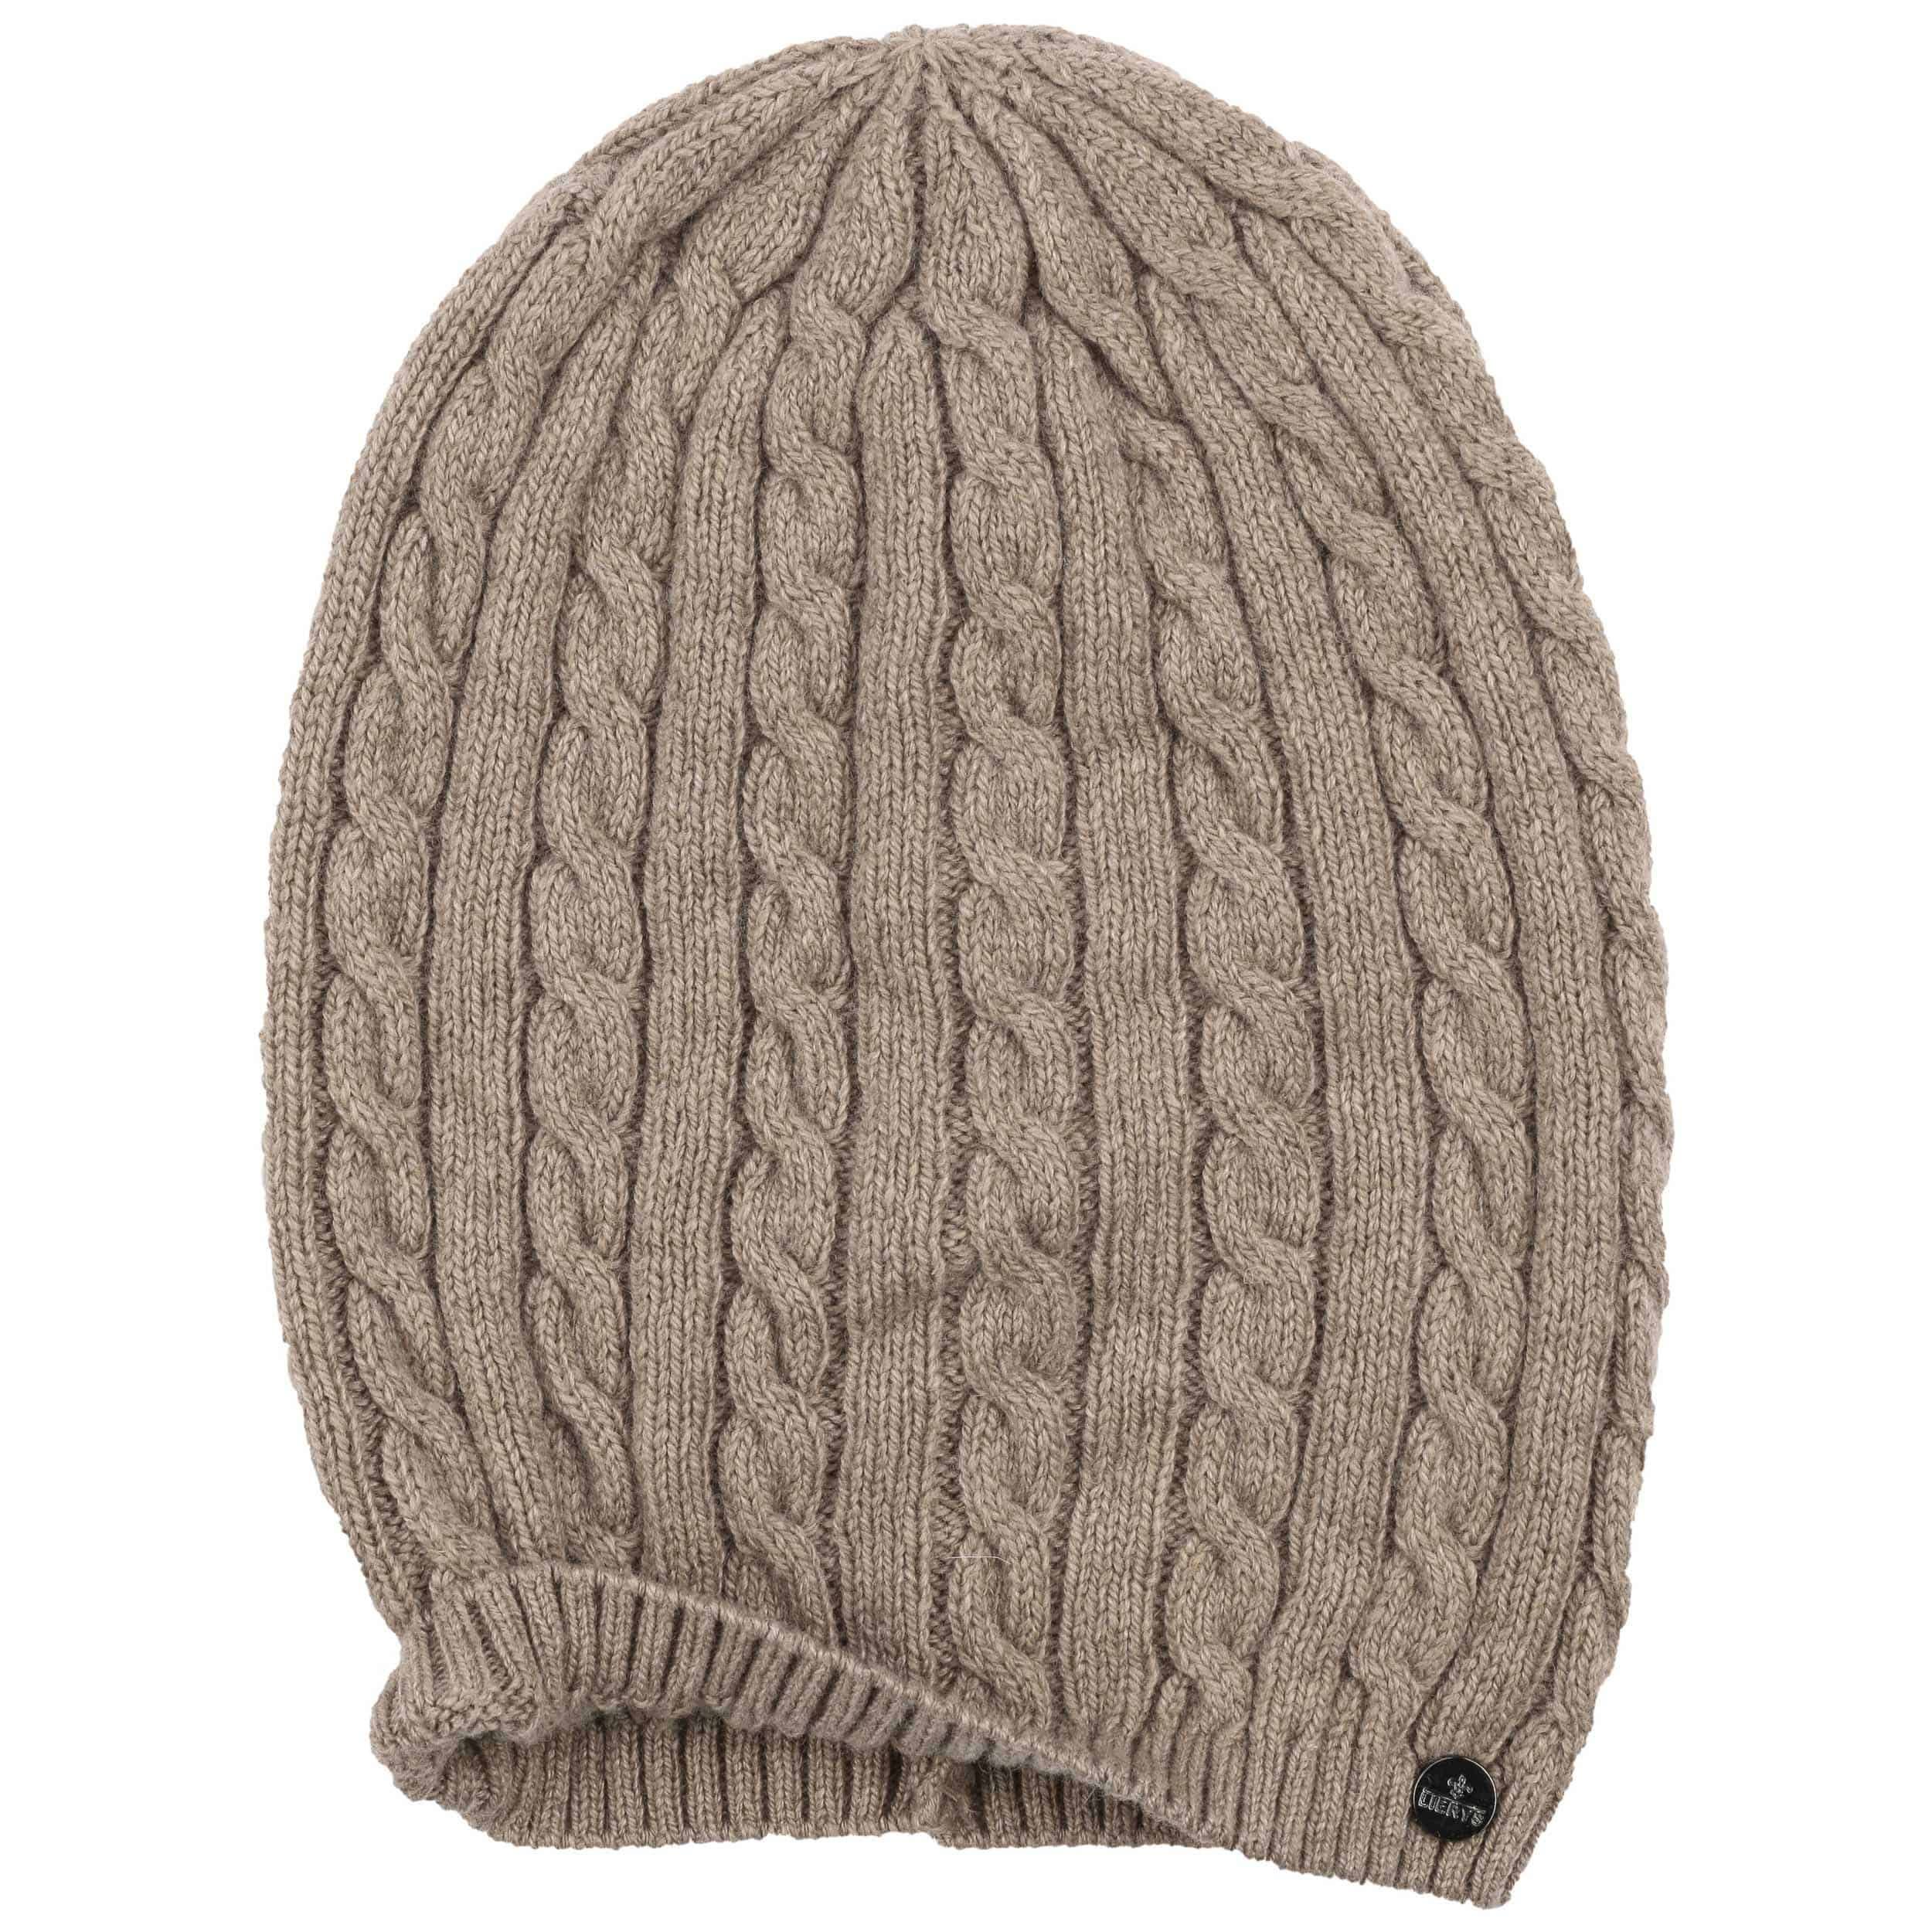 Knitting Pattern Cashmere Hat : Merino Cashmere Knit Hat by Lierys, EUR 39,95 --> Hats, caps & beanies...